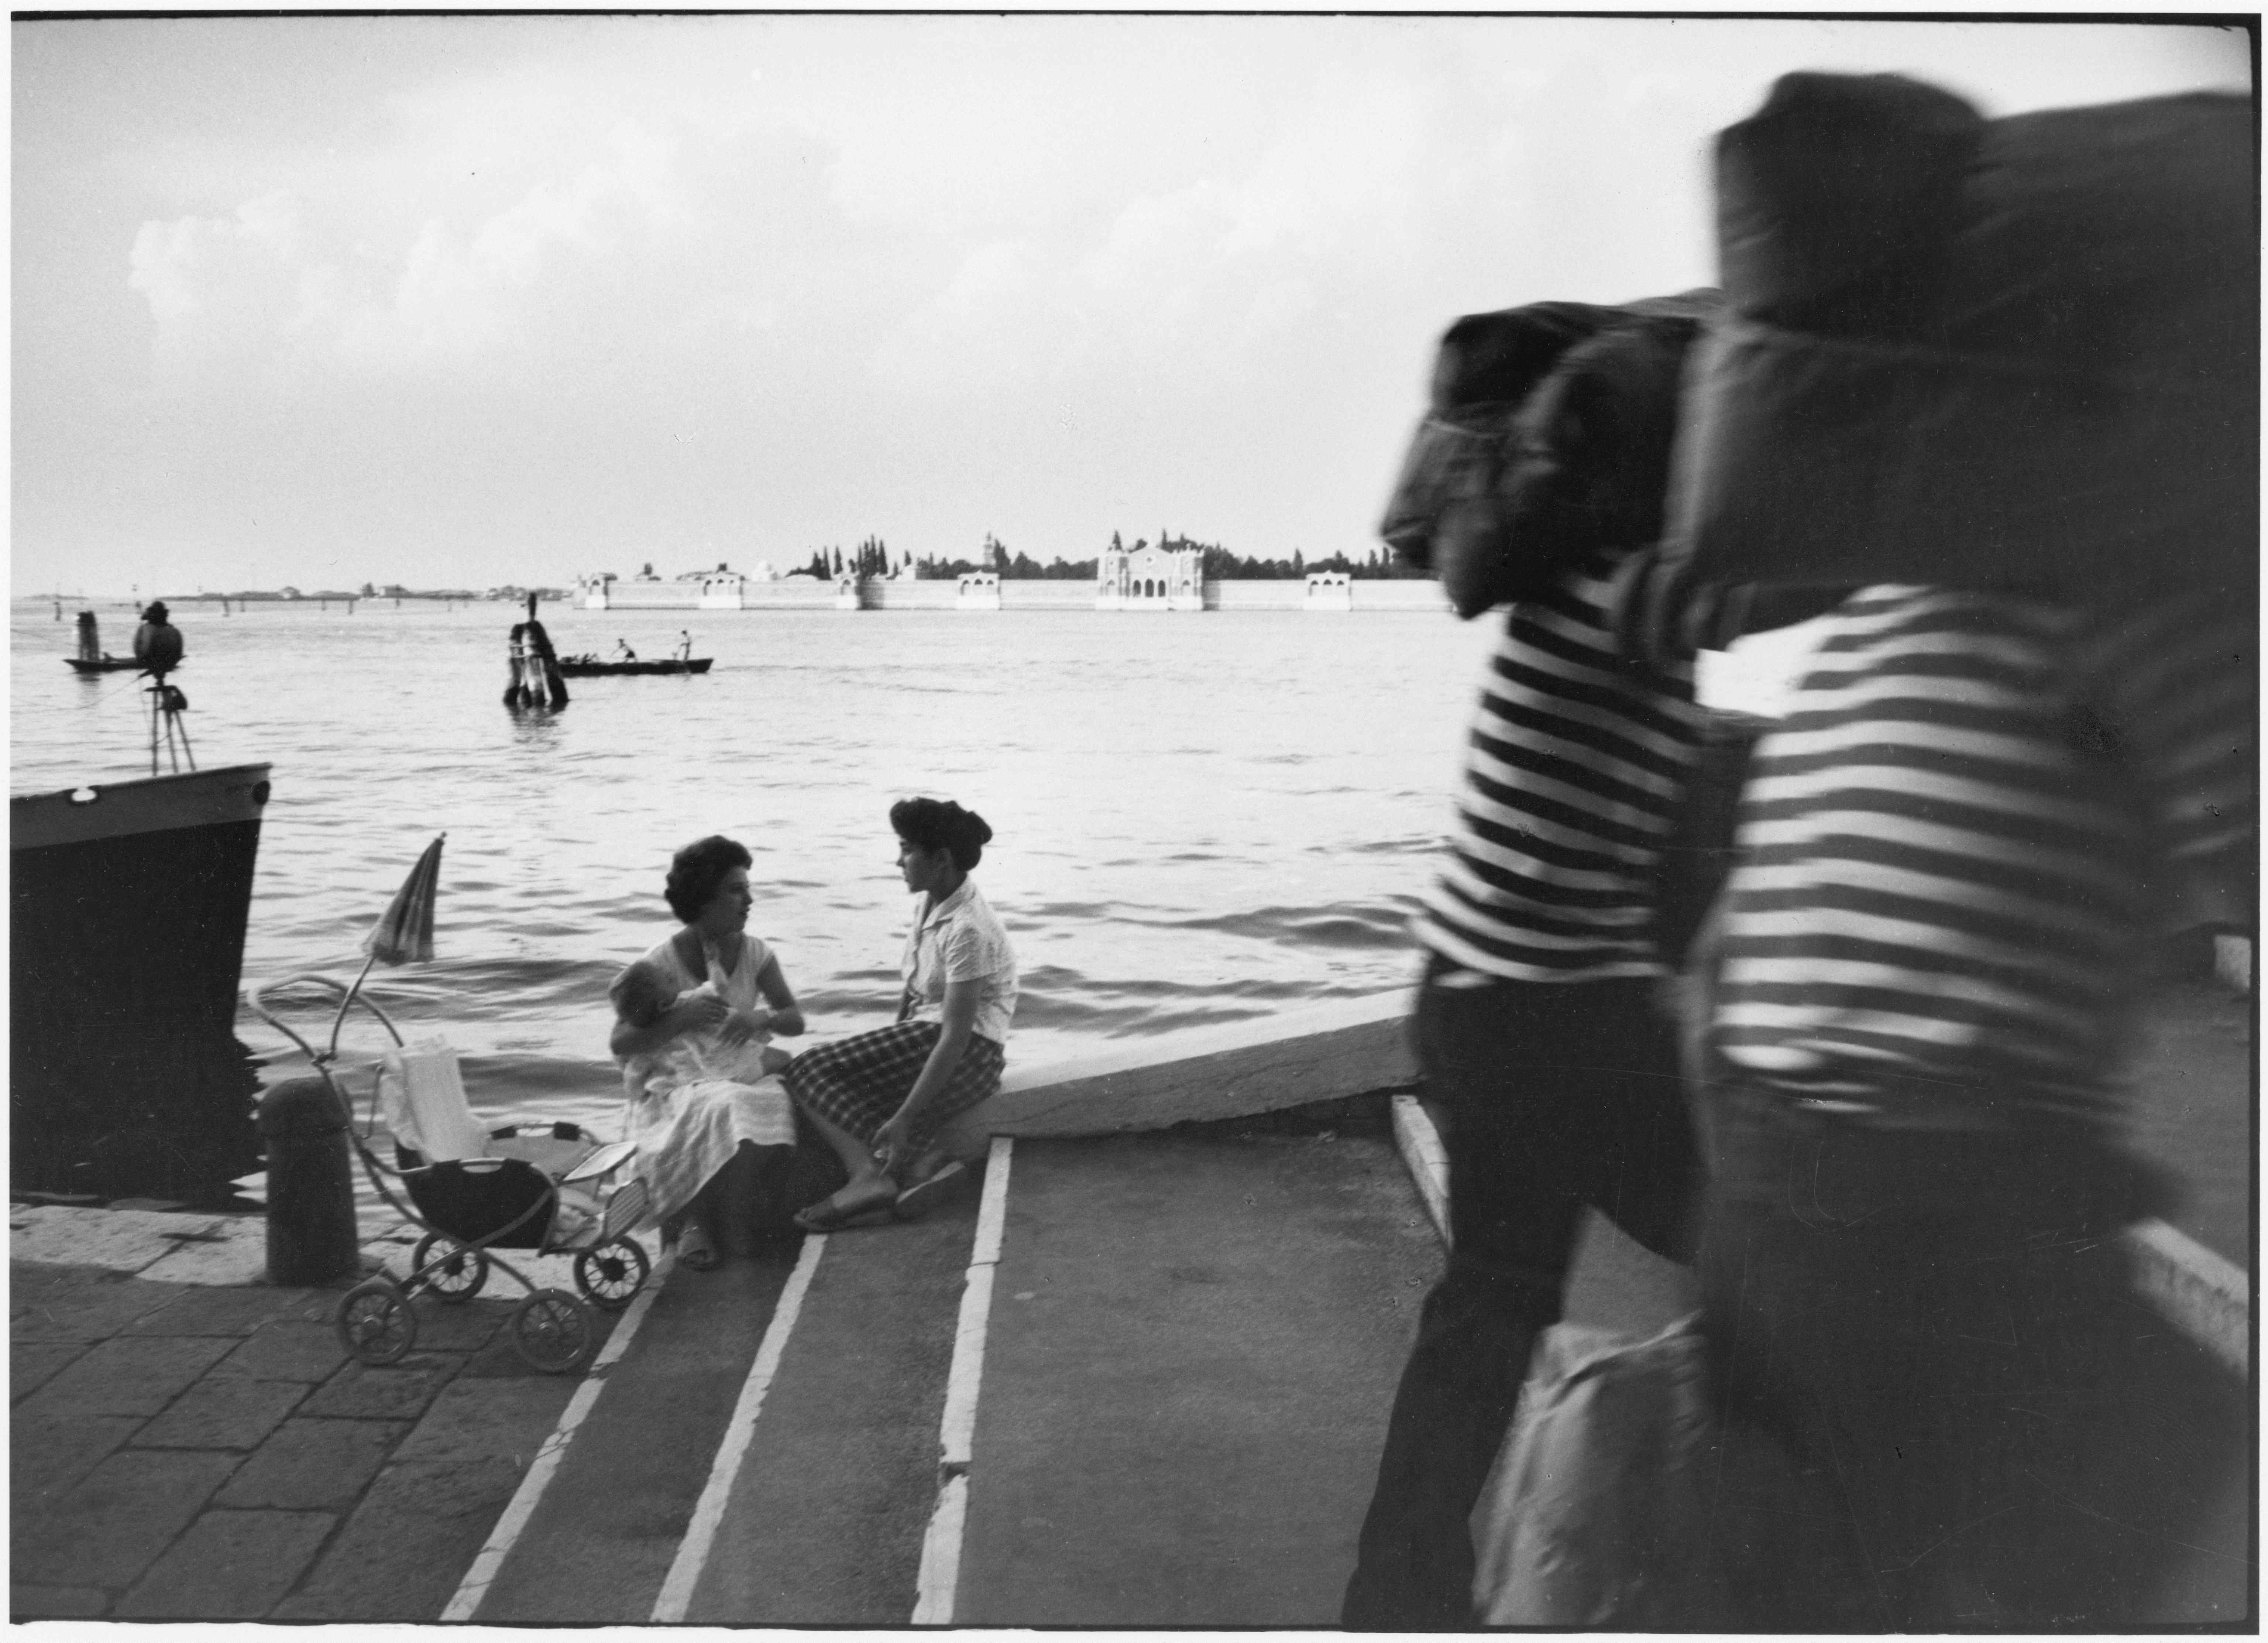 Willy Ronis Fondamente Nuove Venise 1959